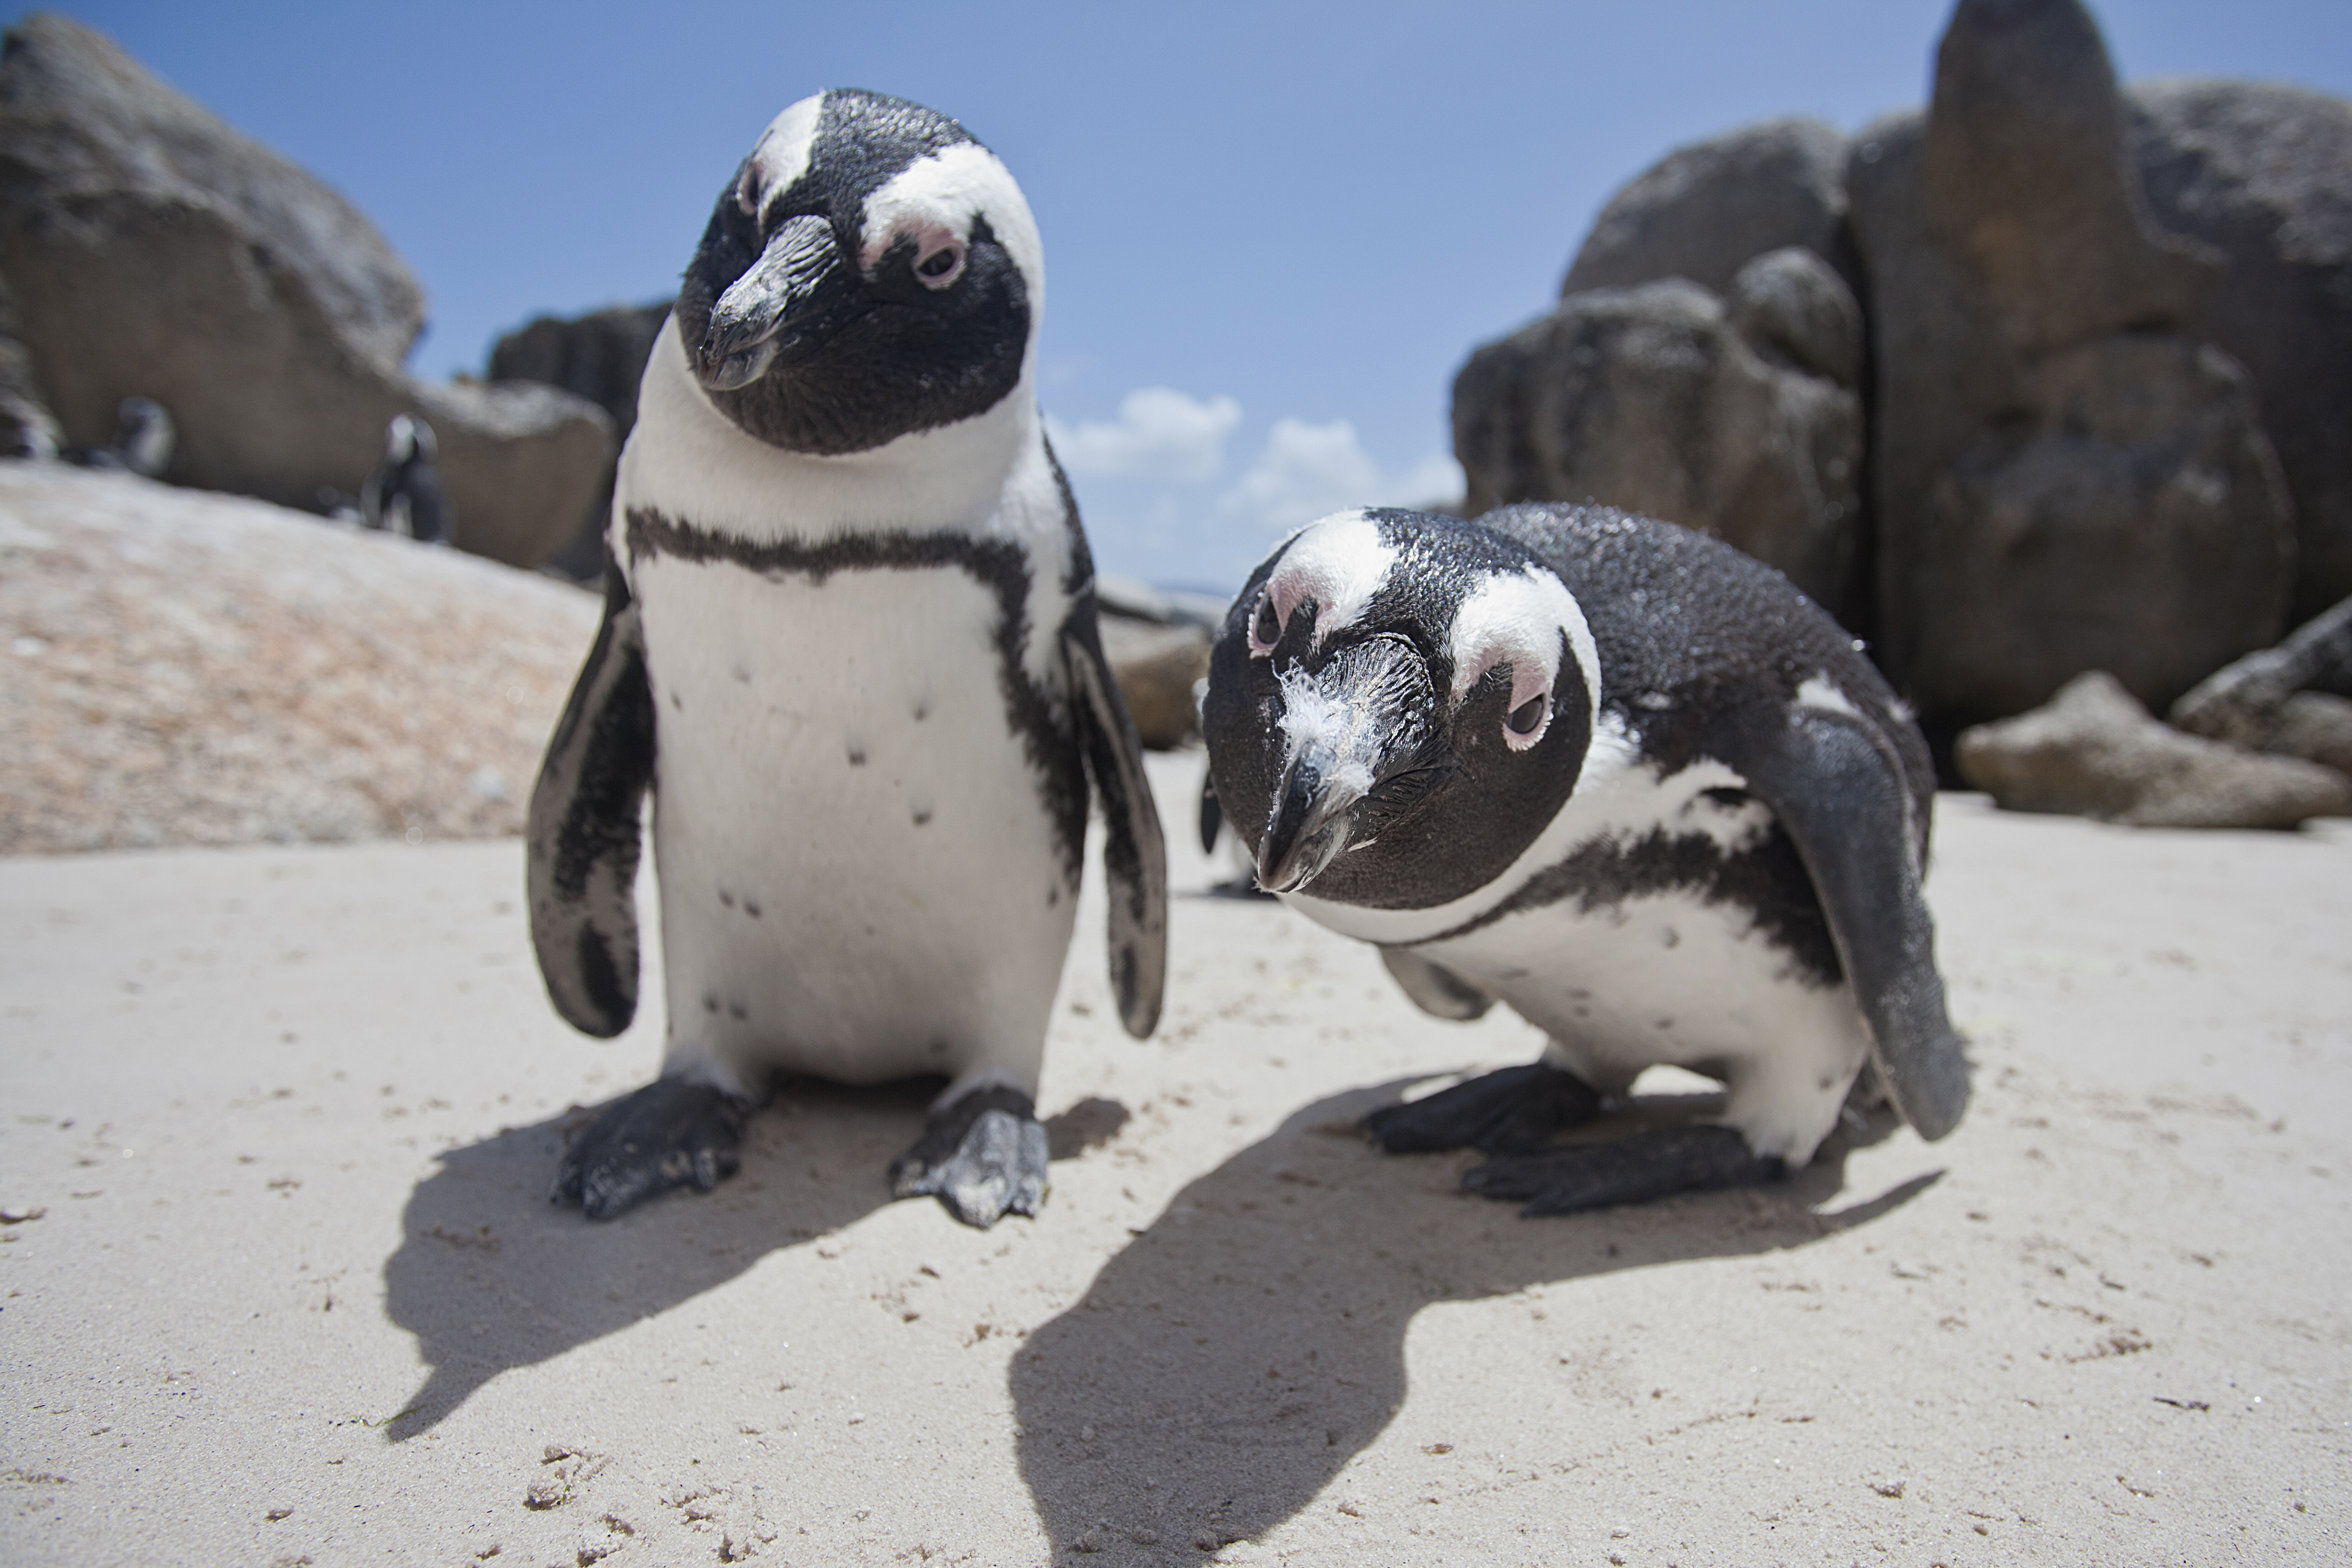 2 penguins look directly at the camera